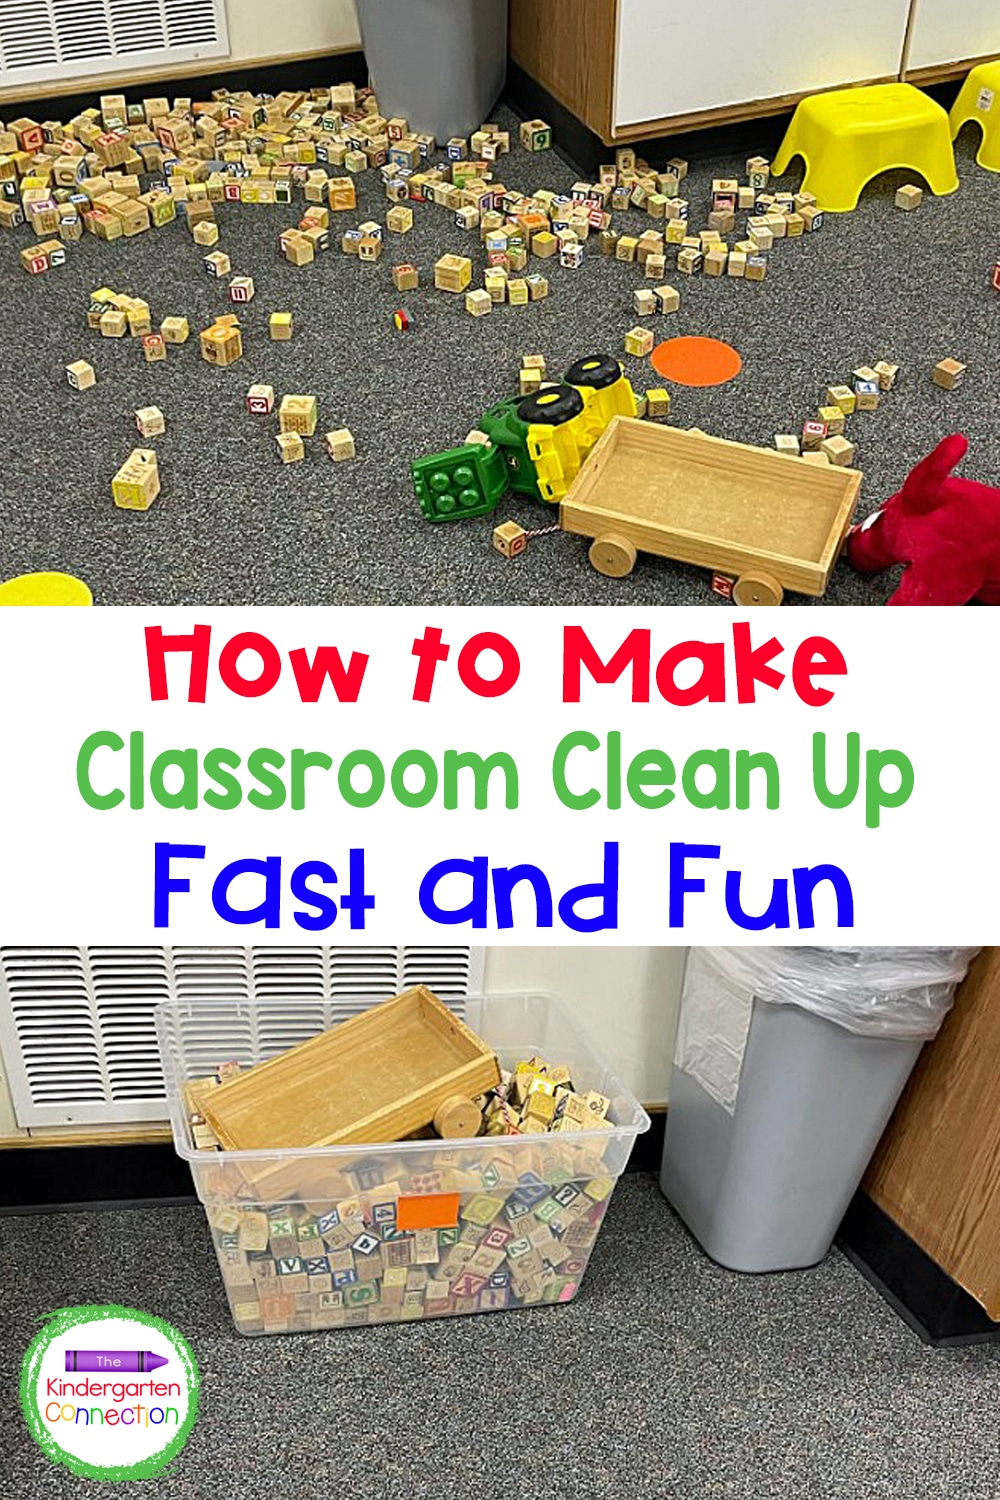 Sometimes the mess is too big and cleaning up feels overwhelming. Try this easy and effective tip for making classroom clean up fast and fun!